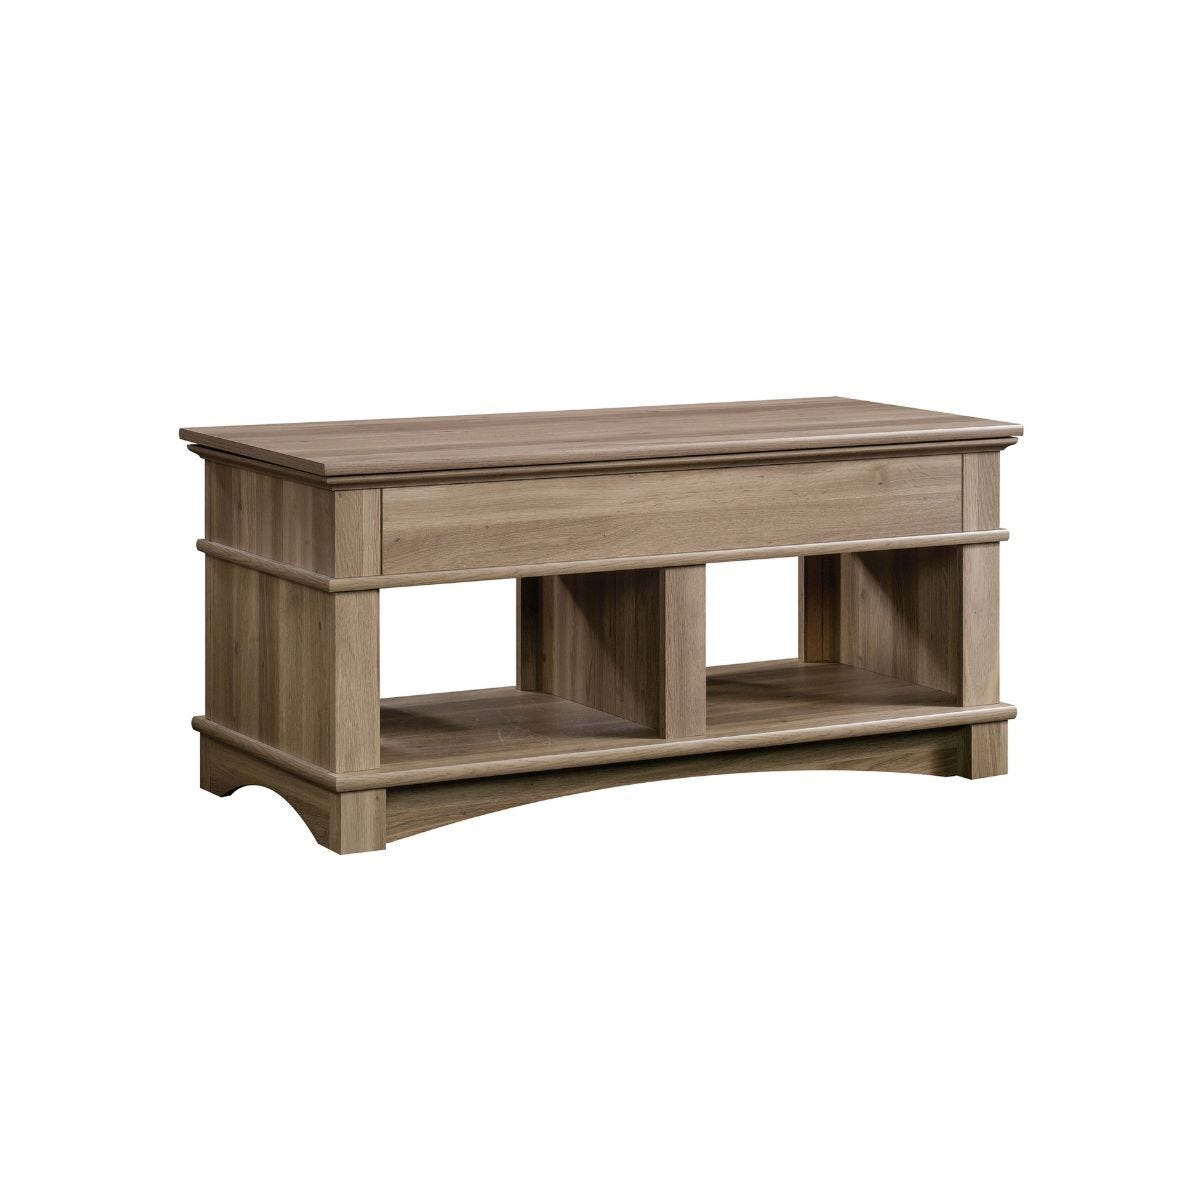 Teknik Office Barrister Home Lift Top Coffee Table